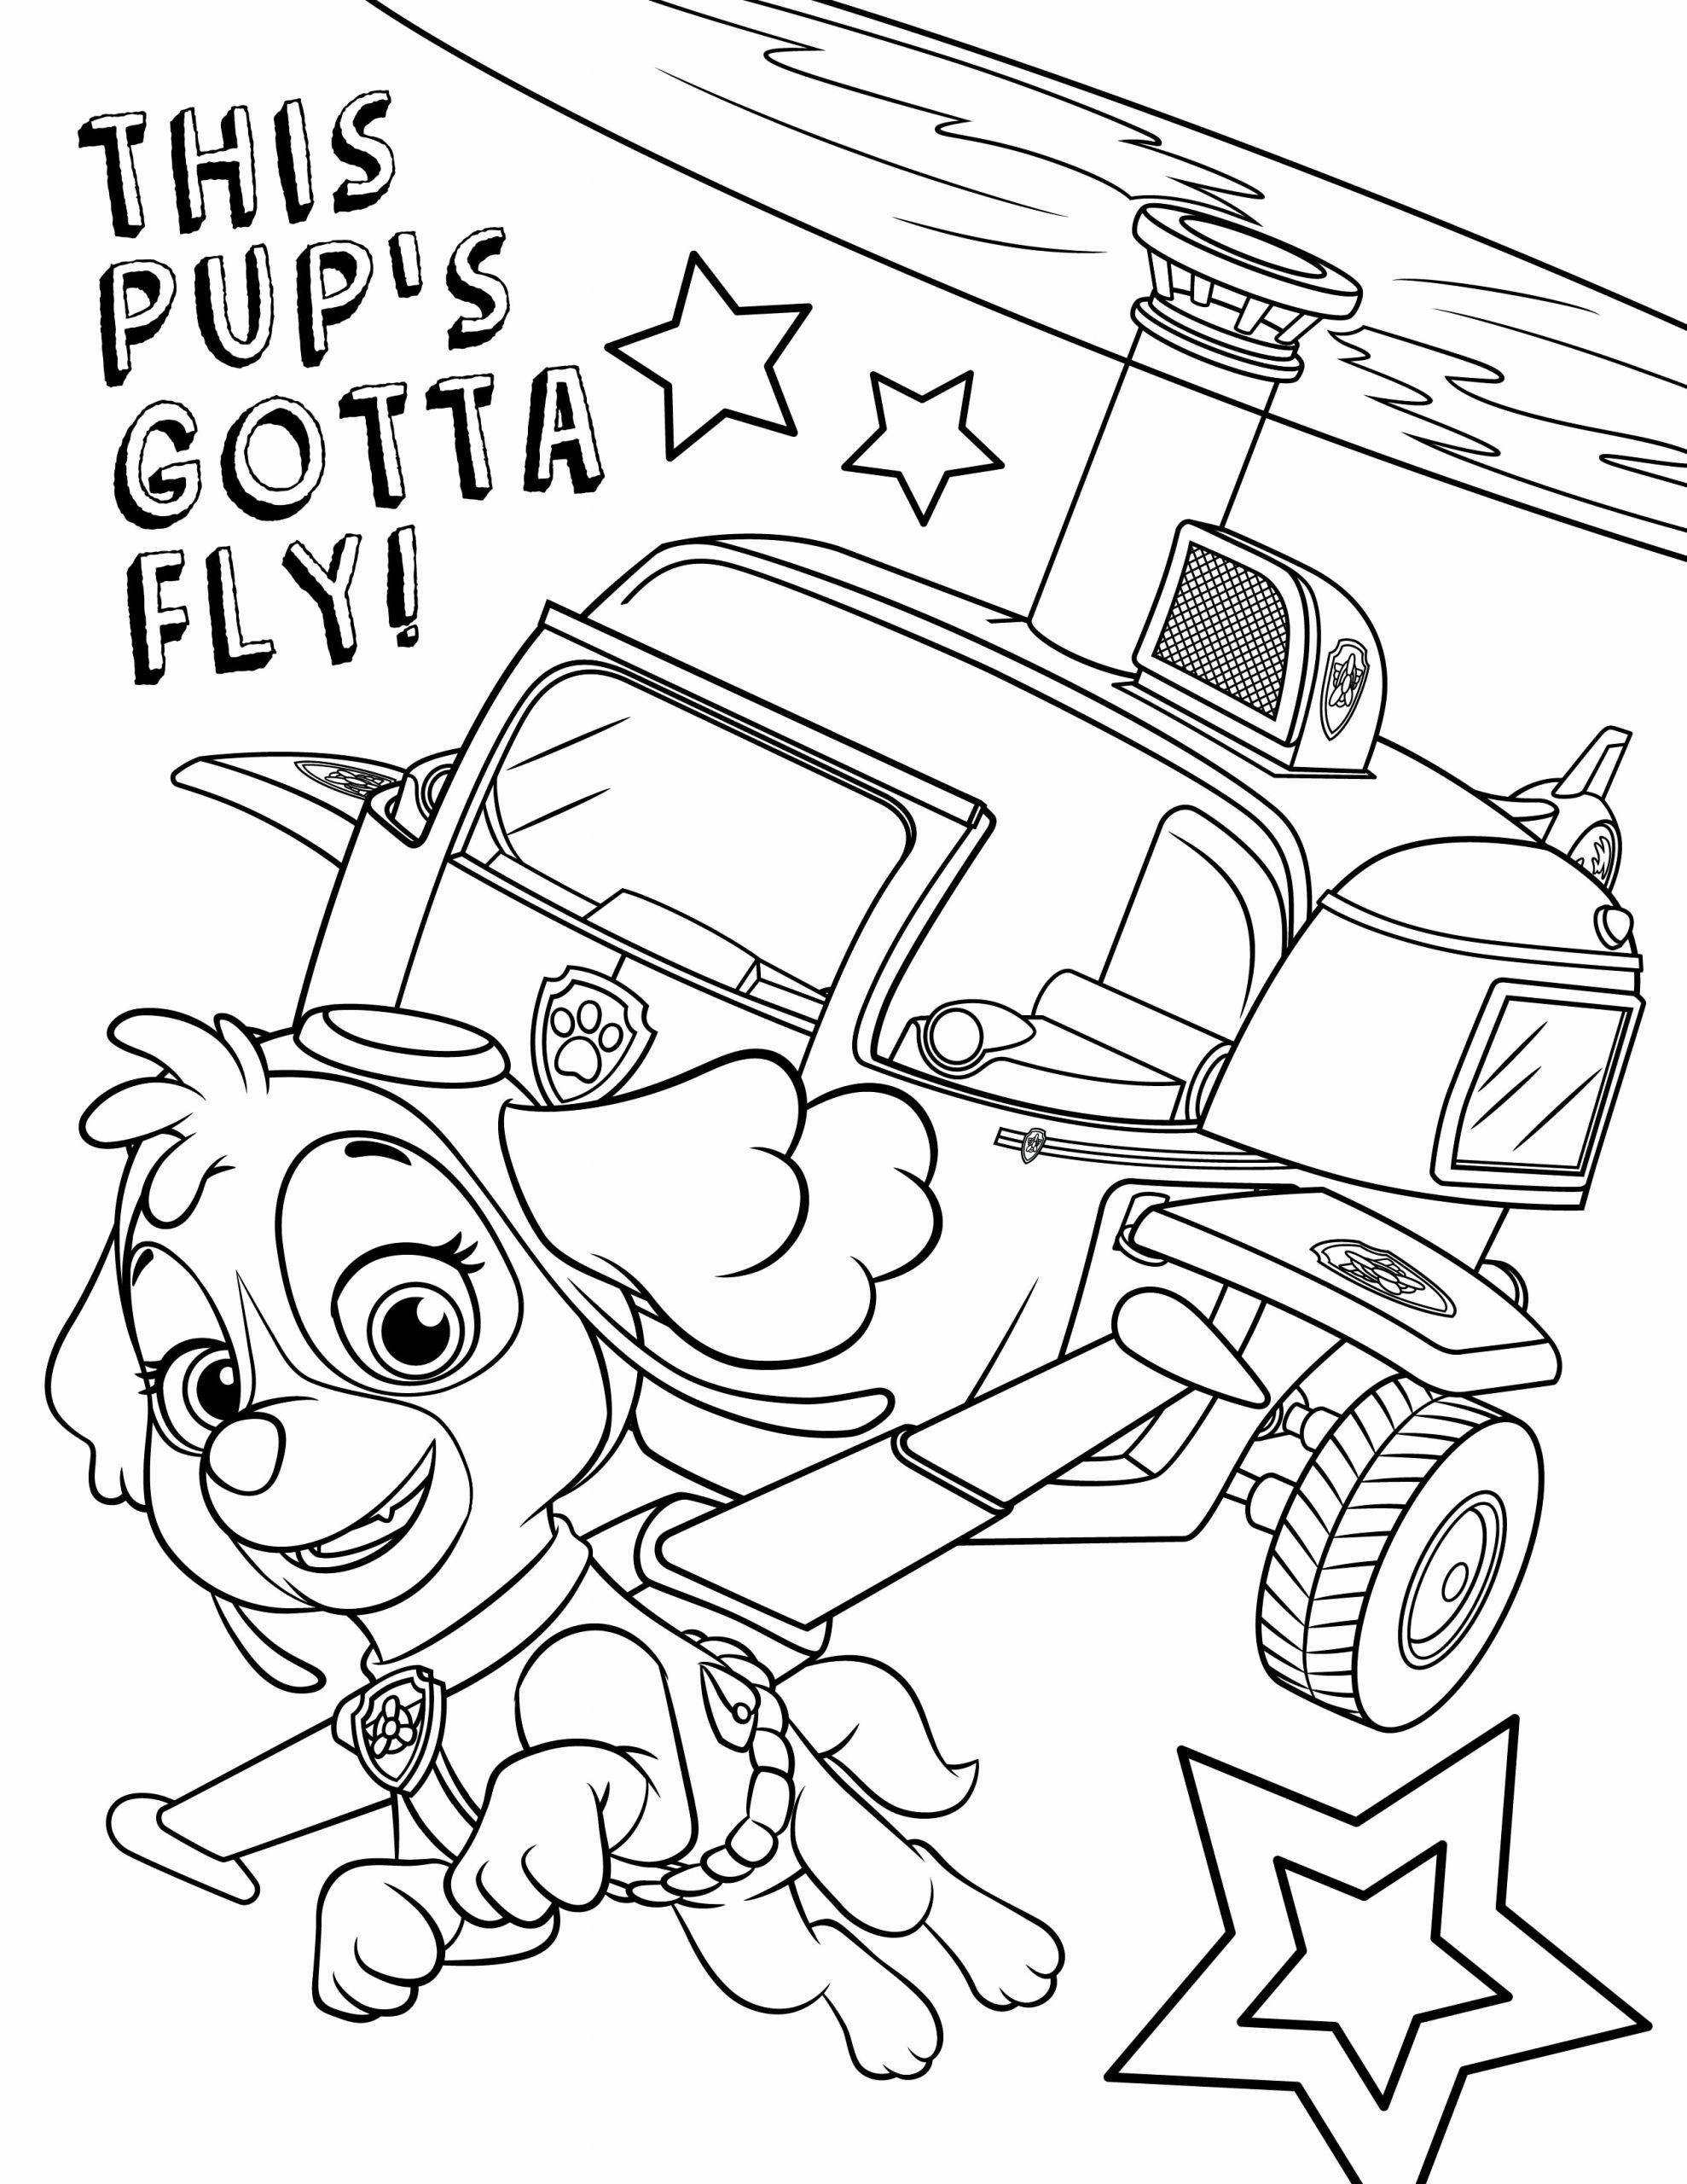 Paw Patrol Skye Coloring Page Fresh Free Paw Patrol Coloring Pages Paw Patrol Coloring Pages Paw Patrol Coloring Birthday Coloring Pages